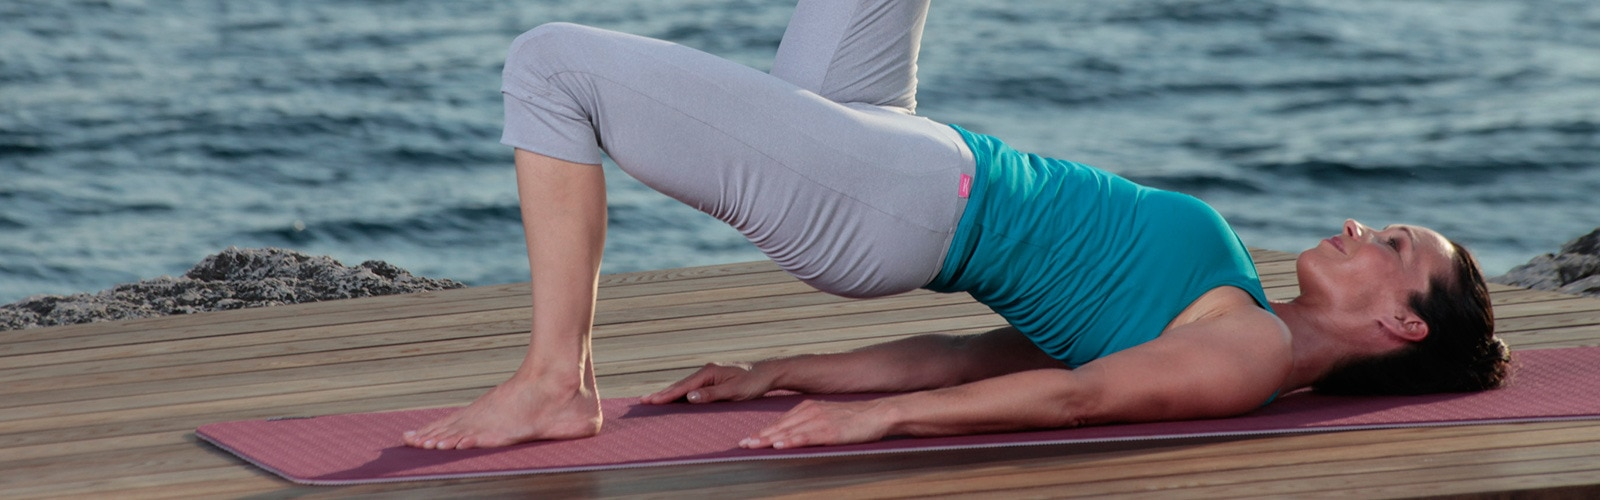 Woman doing yoga by the sea.